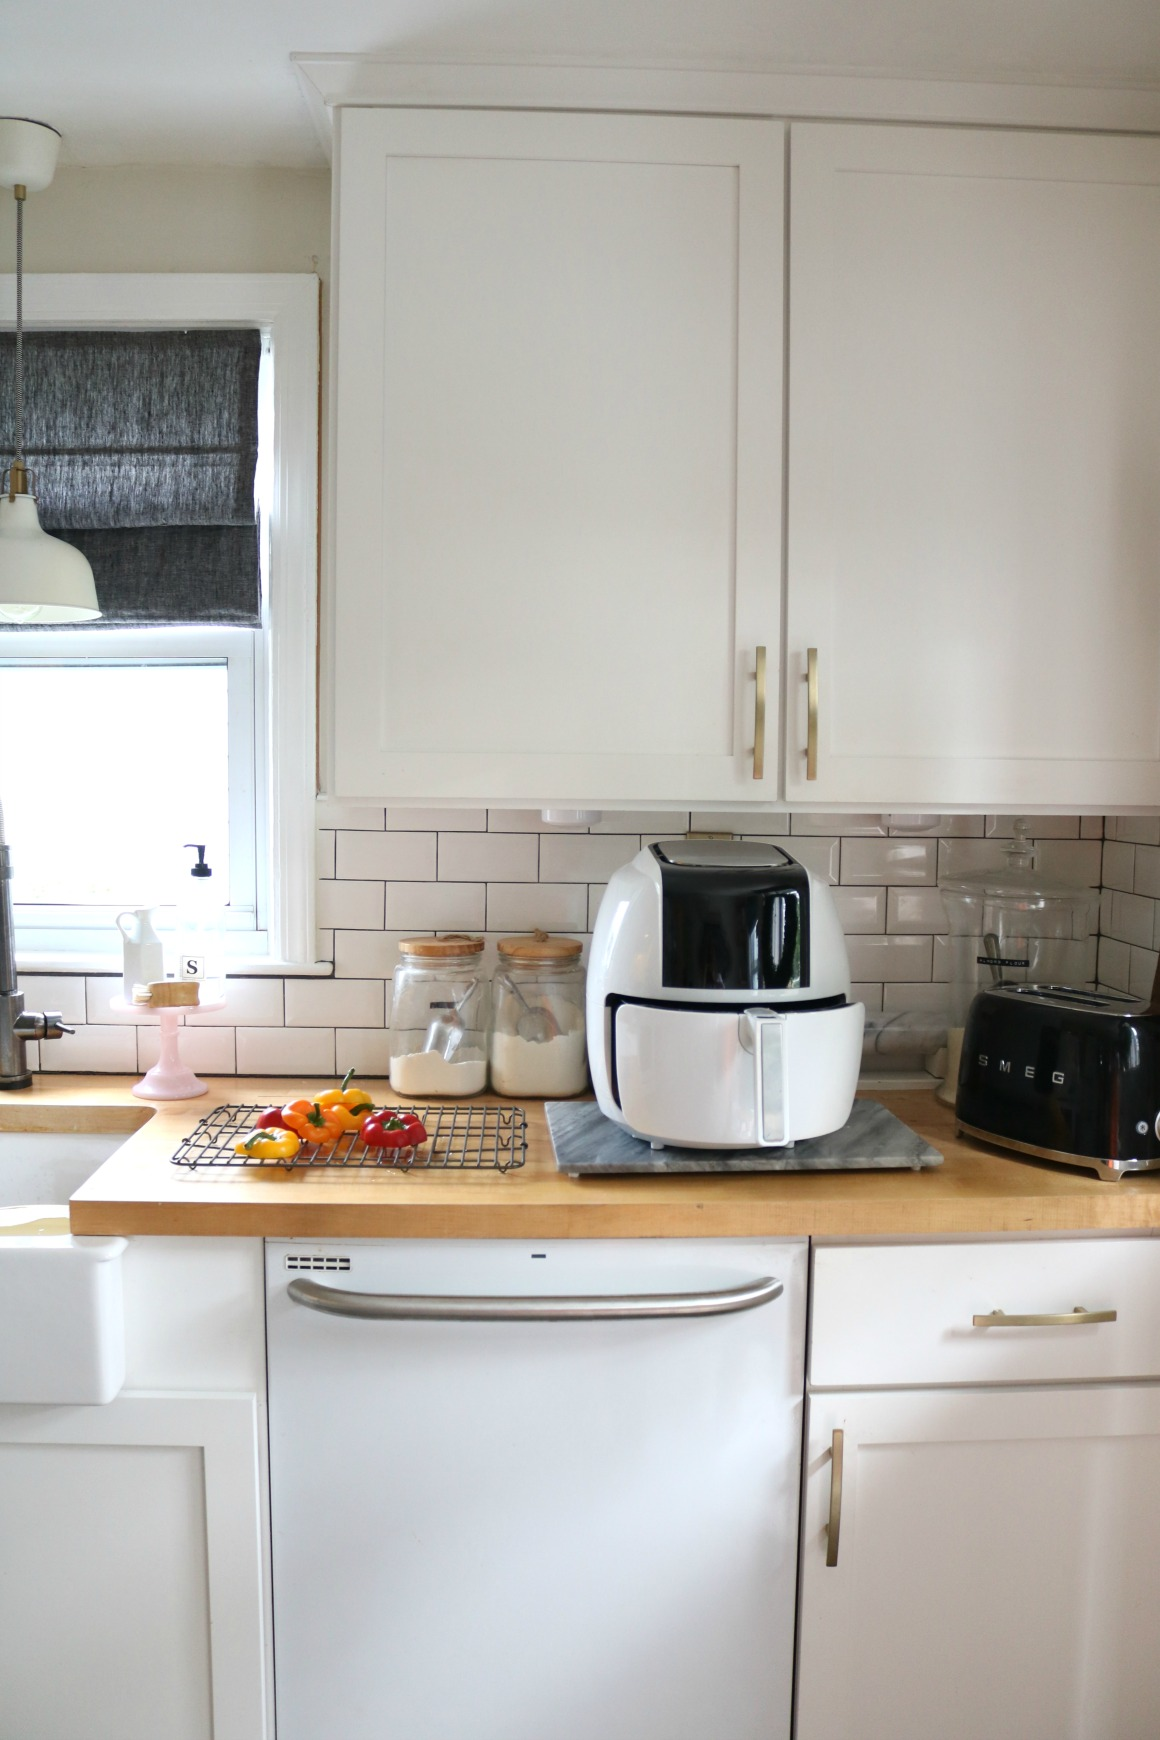 Must Have Small Kitchen Appliances for Healthy Eating